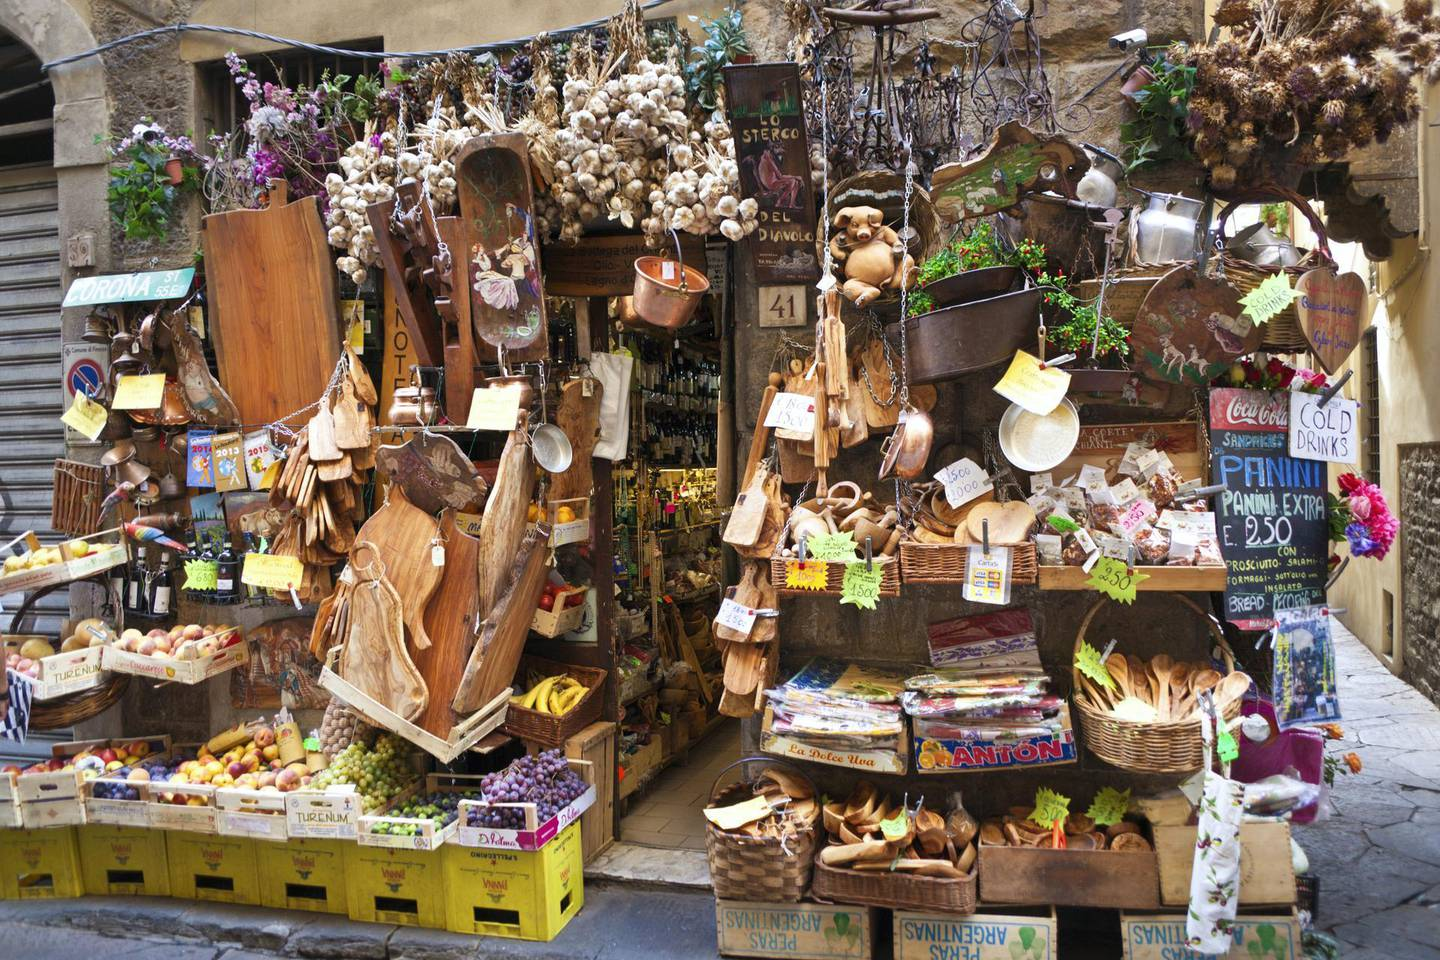 Florence, Italy - Sep 22, 2015: Urban street scene of an elaborate, crowded, charming front entrance display at a retail grocery store, featuring fruits, vegetables, and housewares, Florence, Italy.